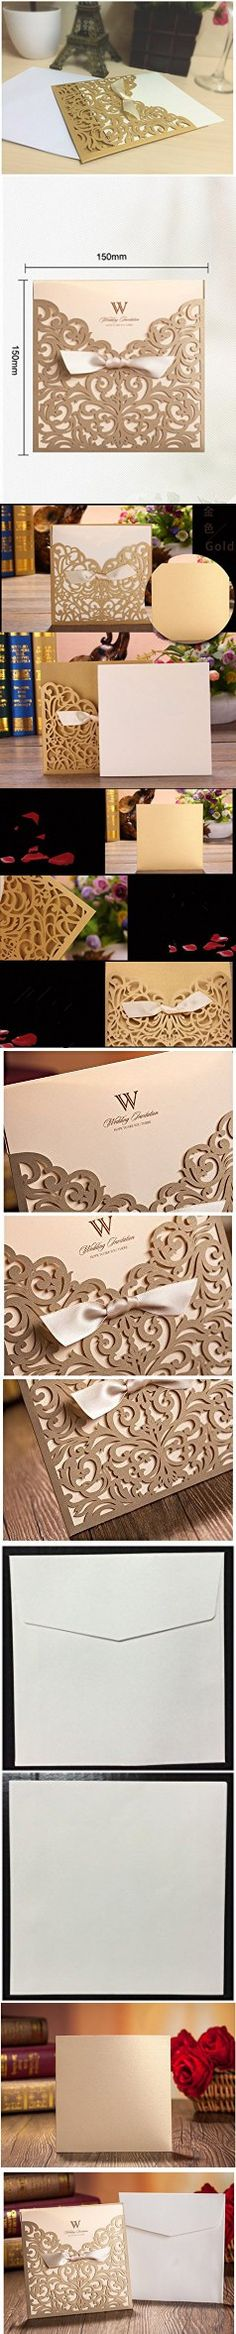 blank wedding invitations%0A Hophen   pcs Elegant Red Laser Cut Wedding Invitations Cards with Envelopes  and Stickers  Party invite    Wedding Invitations   Pinterest   Laser cut